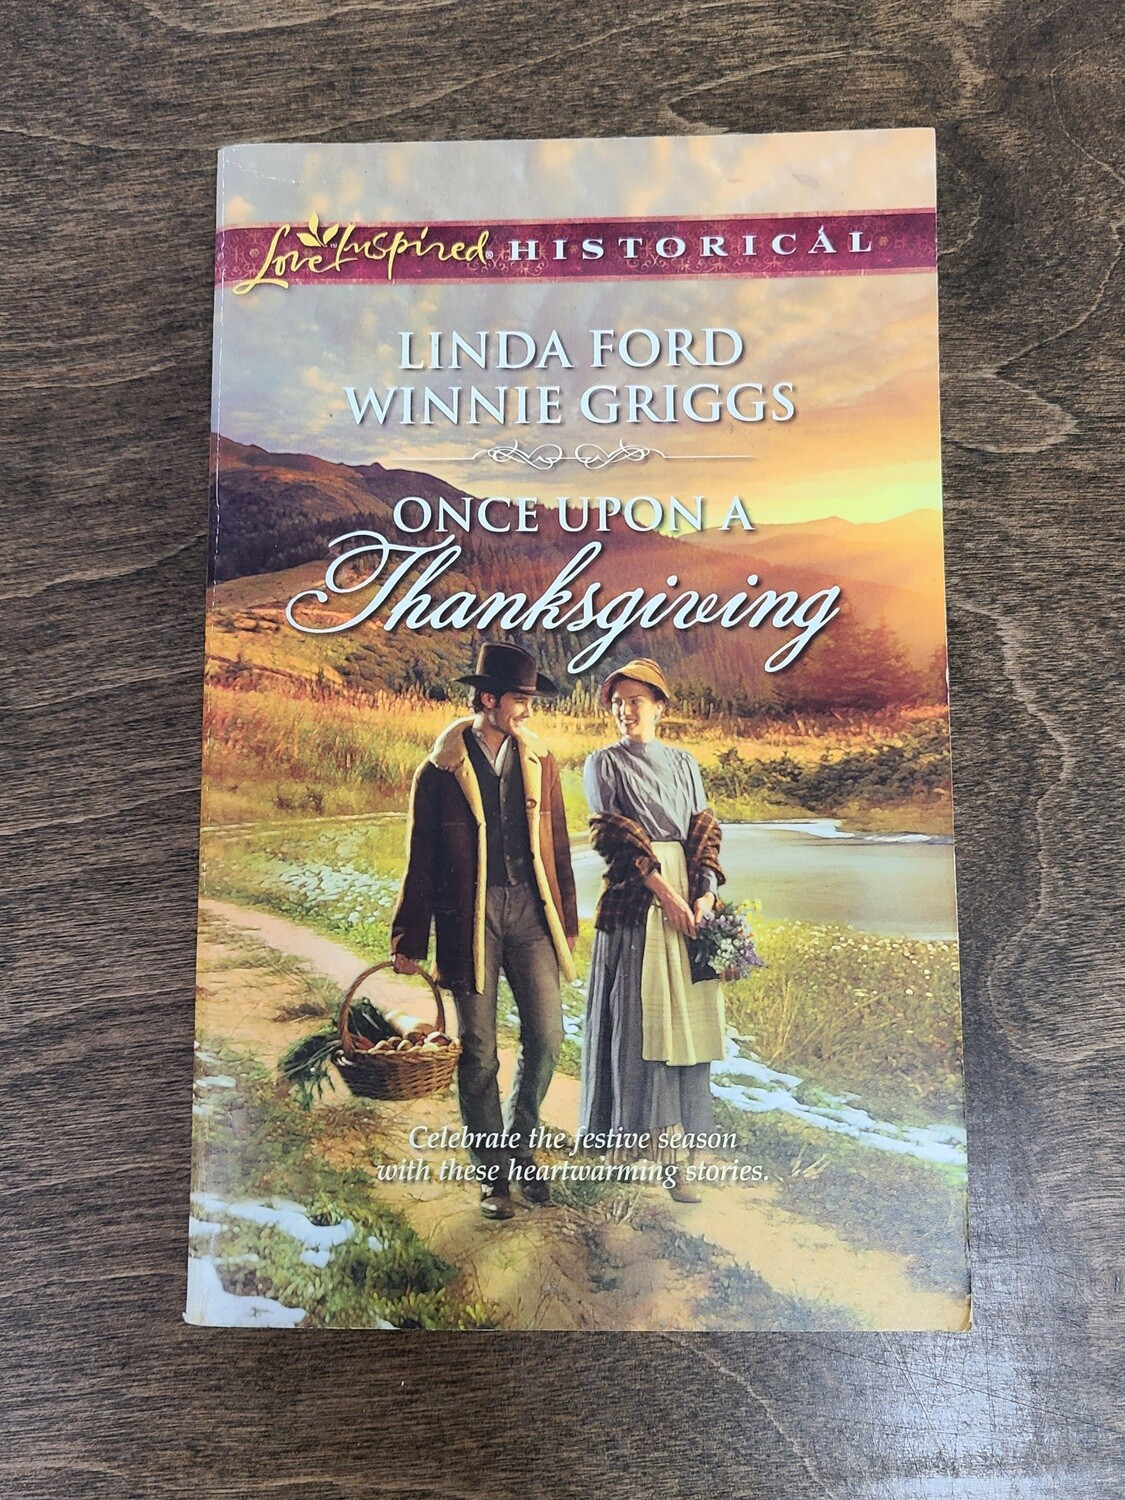 Once Upon a Thanksgiving by Linda Ford and Winnie Griggs